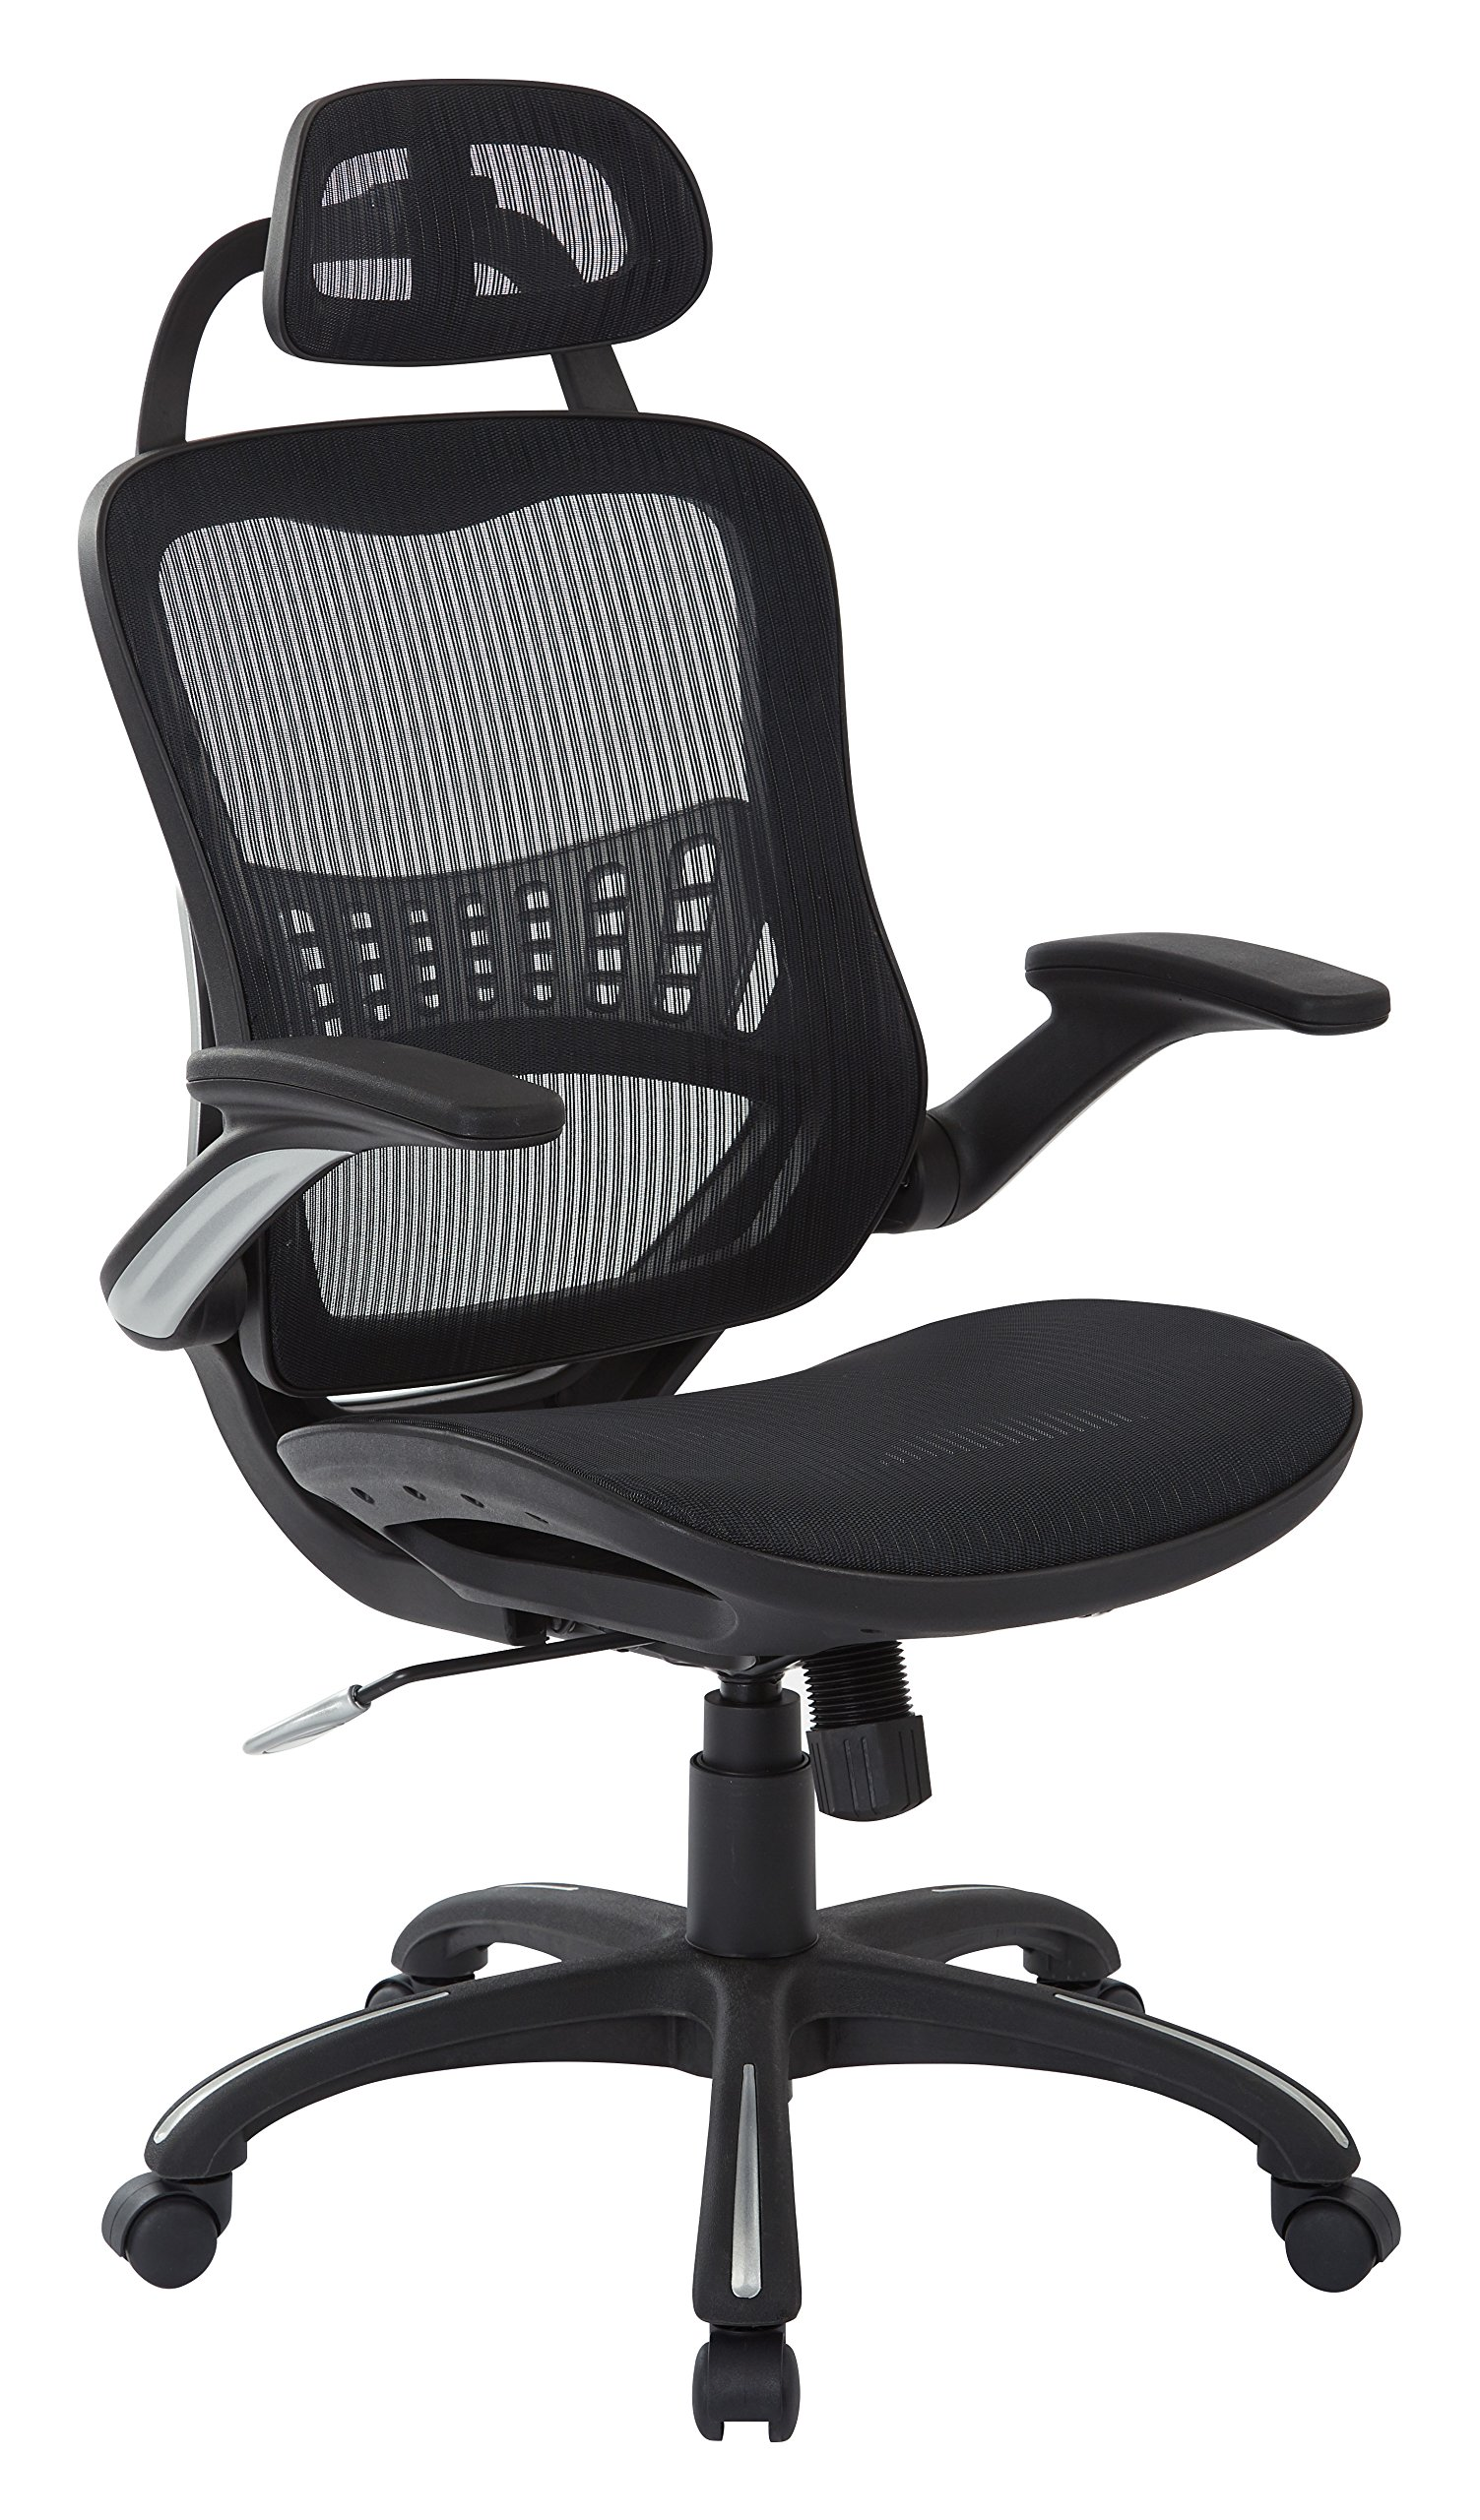 Office Star  Breathable Mesh Seat and Back, 2-to-1 Synchro Tilt Control, Padded Flip Arms, Silver Base and Accents Managers Chair with Headrest, Black. by Office Star